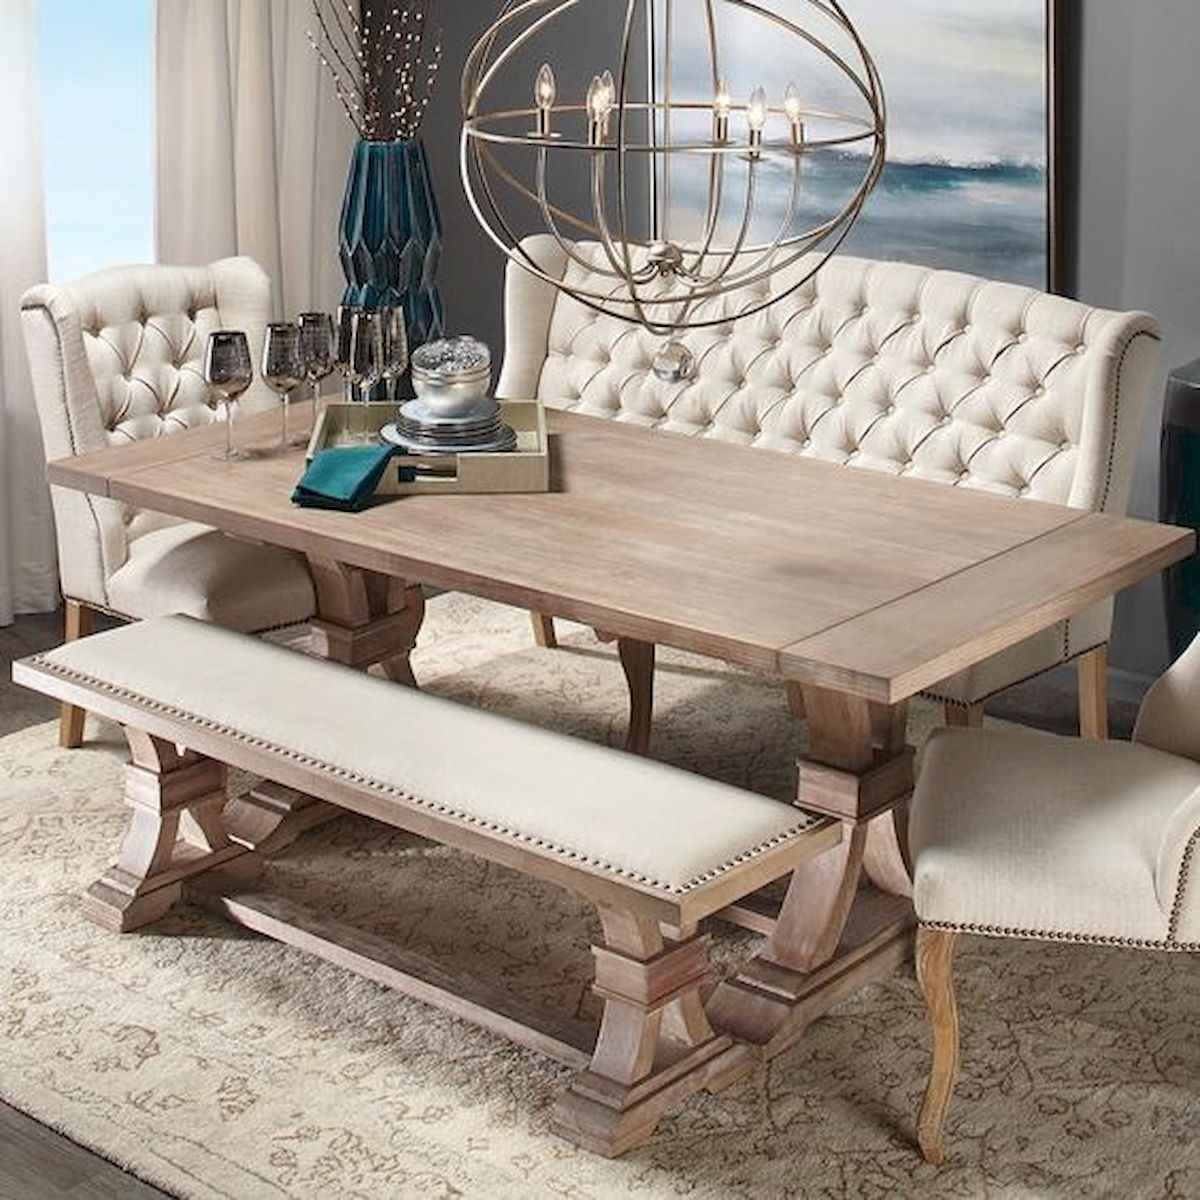 55 Stunning DIY Projects Furniture Tables Dining Rooms Design Ideas (52)